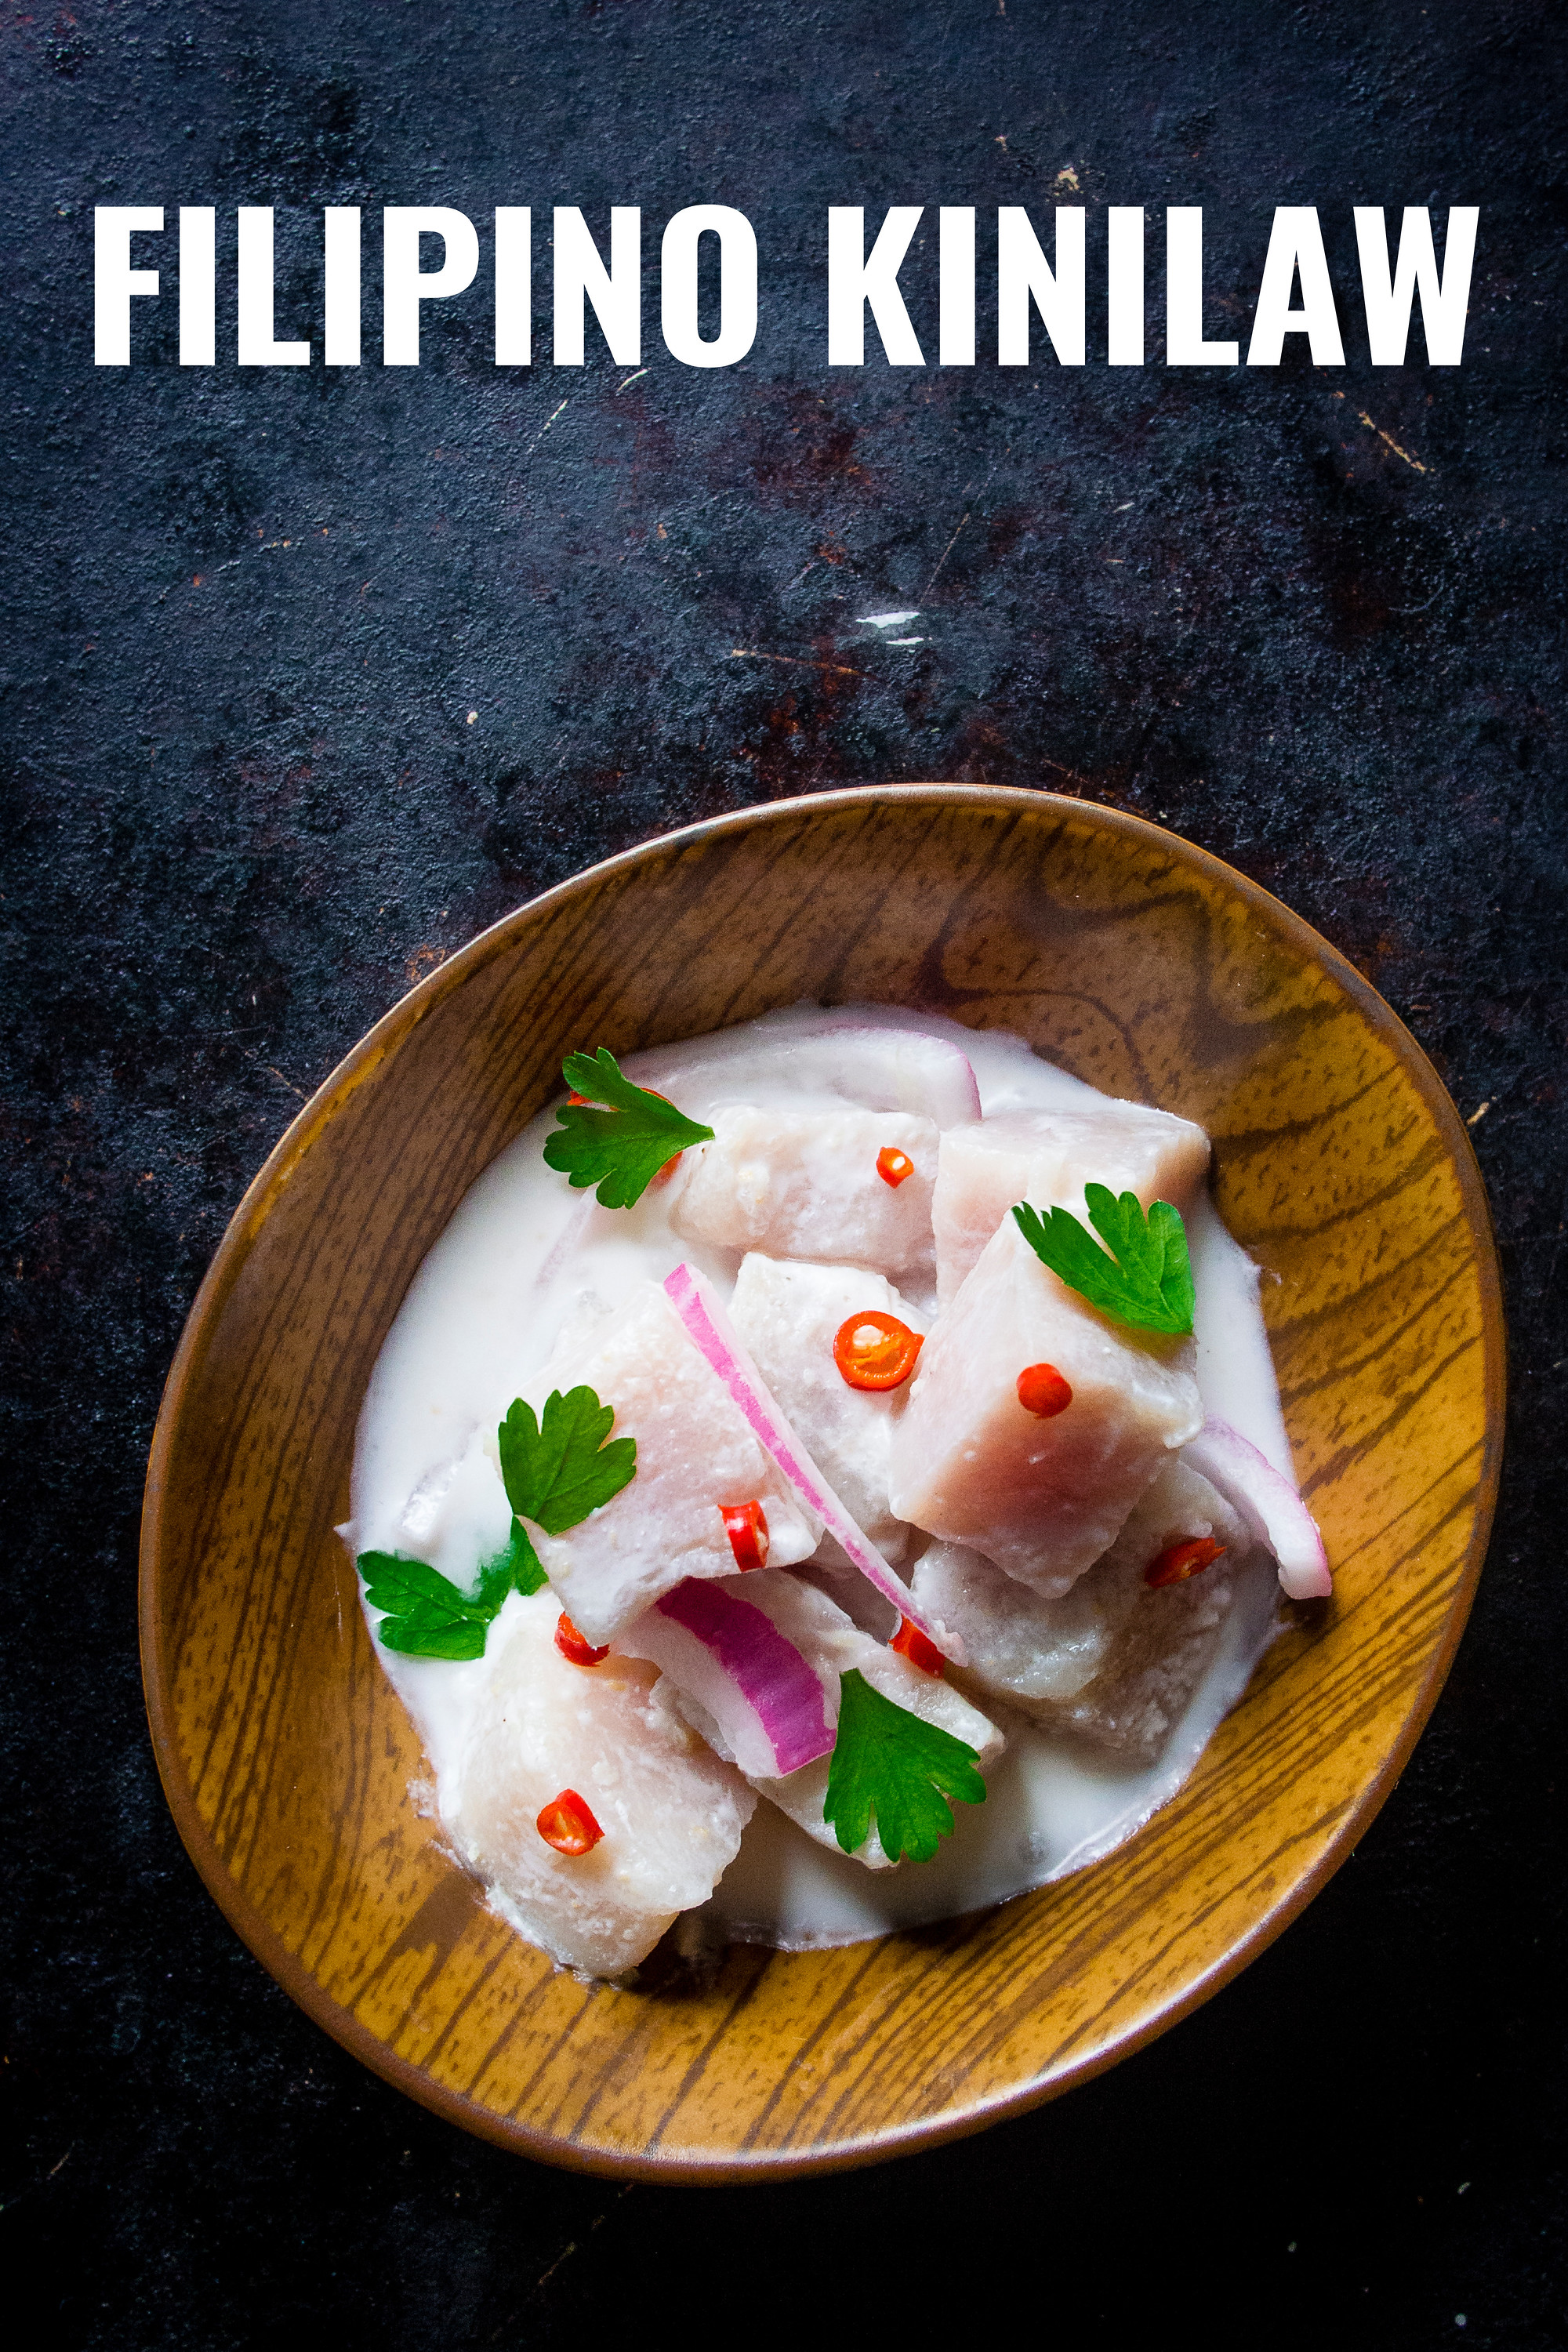 Easy Filipino kinilaw recipe, perfect If you like ceviche and poke with only 5 ingredients.